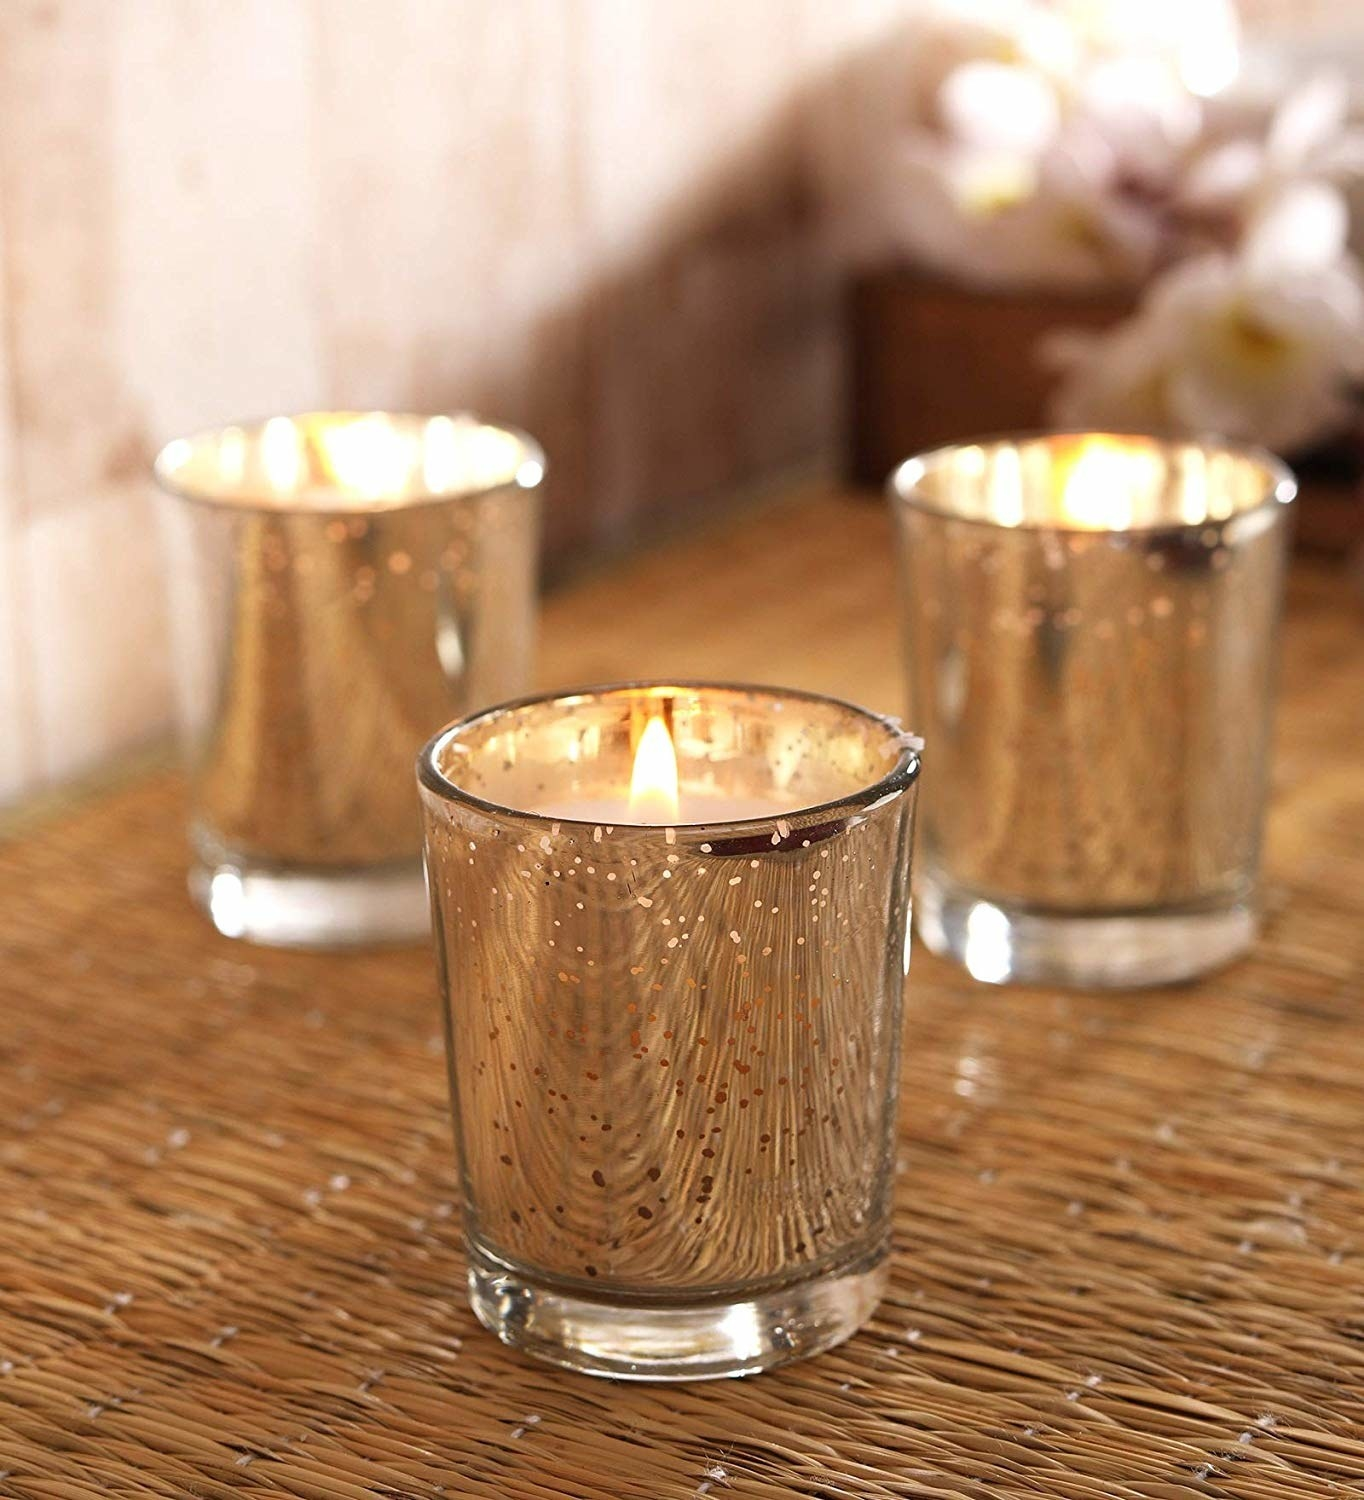 A set of three metallic glass holders on a table with lit candles inside them